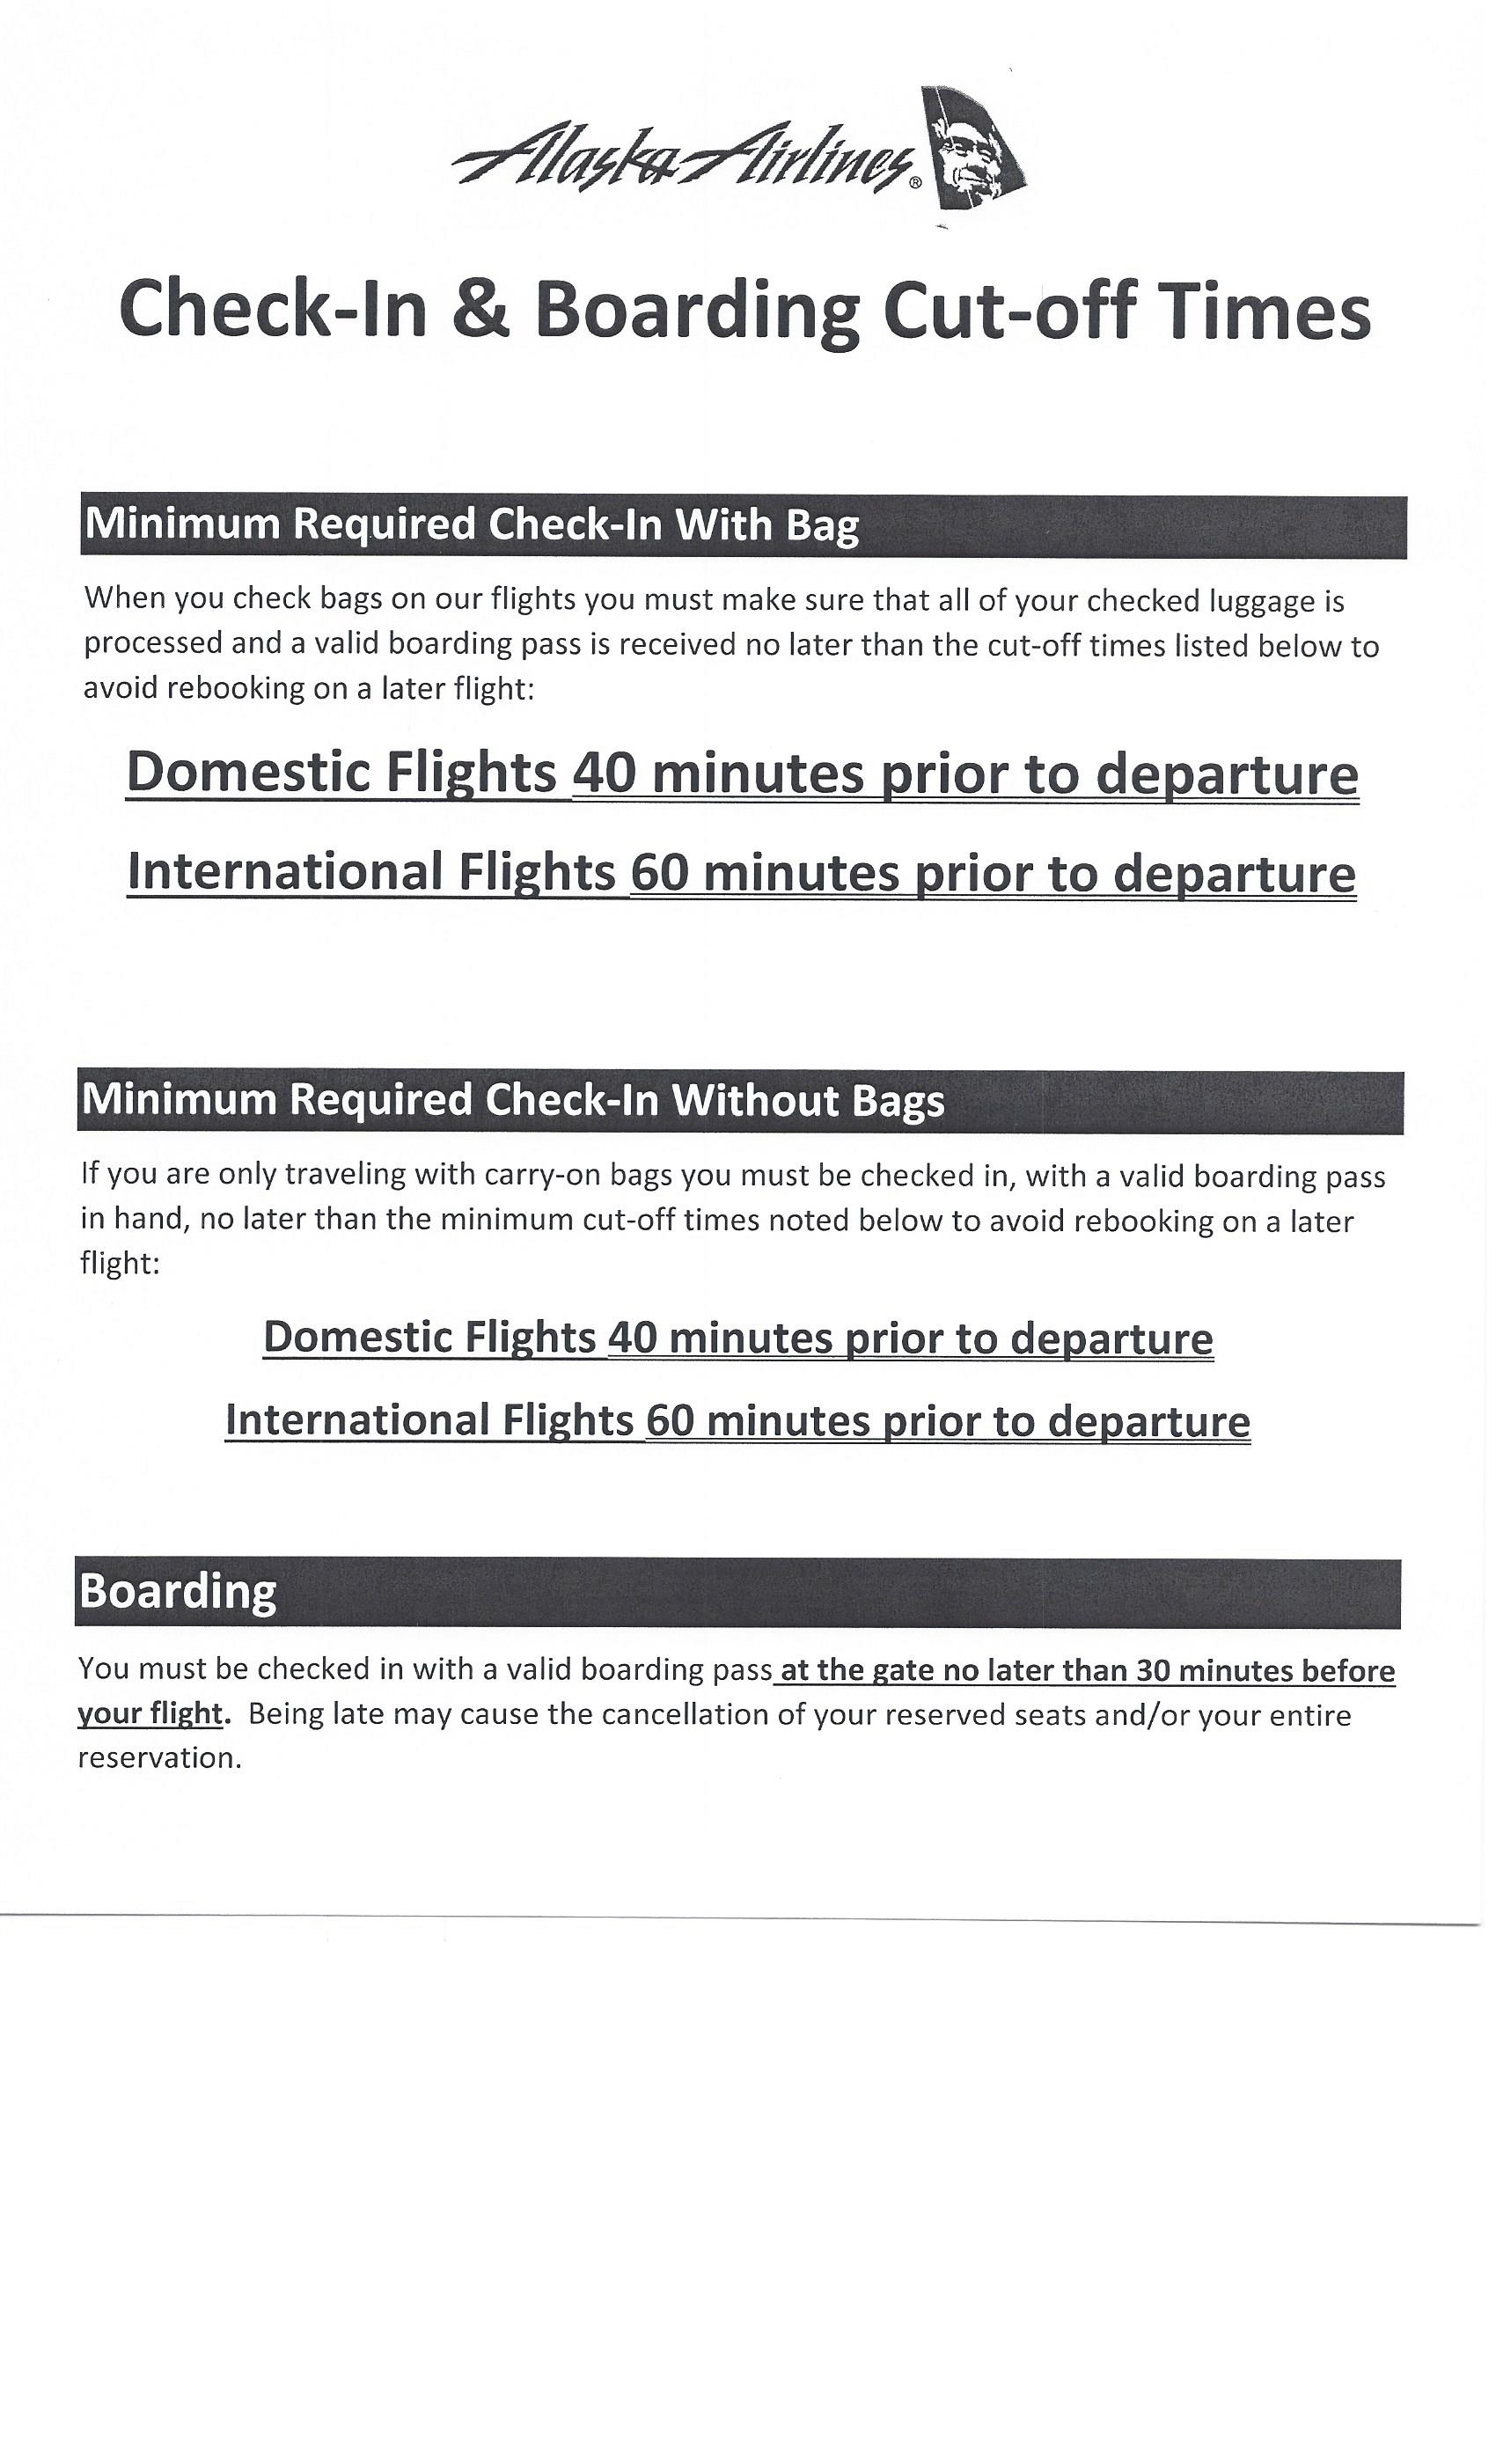 Check-In & Boarding Cut-Off Times - Pullman-Moscow Regional Airport